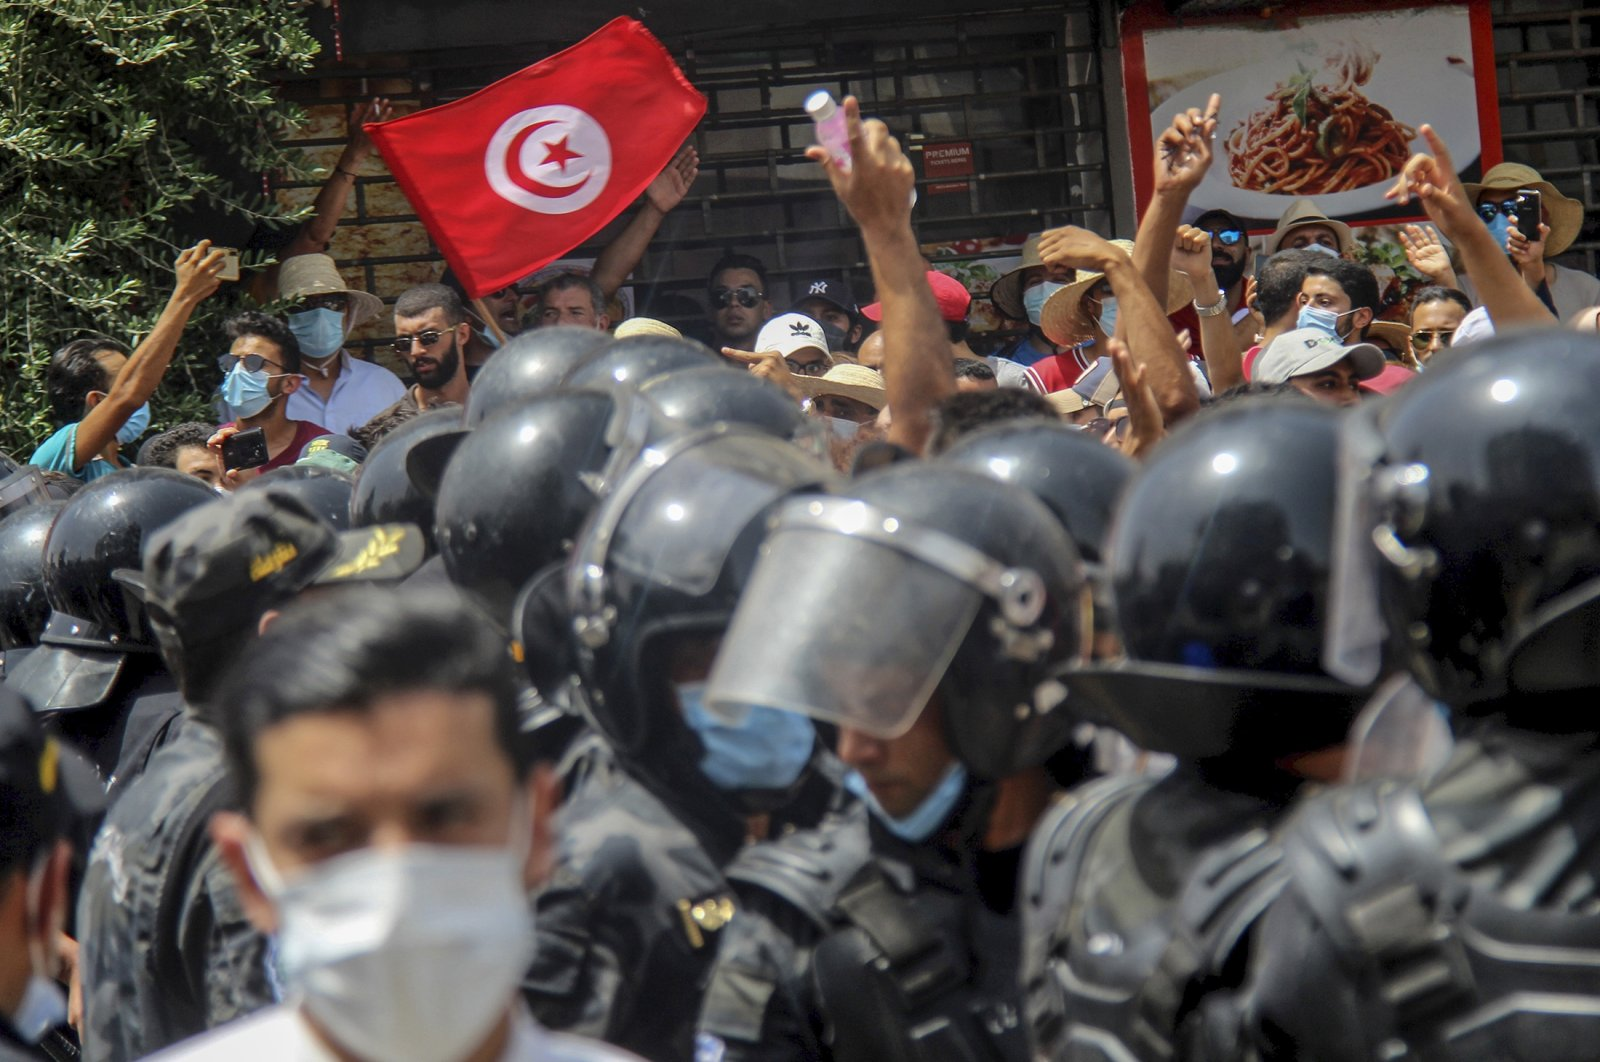 Protesters face Tunisian police officers during a demonstration in Tunis, Tunisia, Sunday, July 25, 2021. (AP Photo)